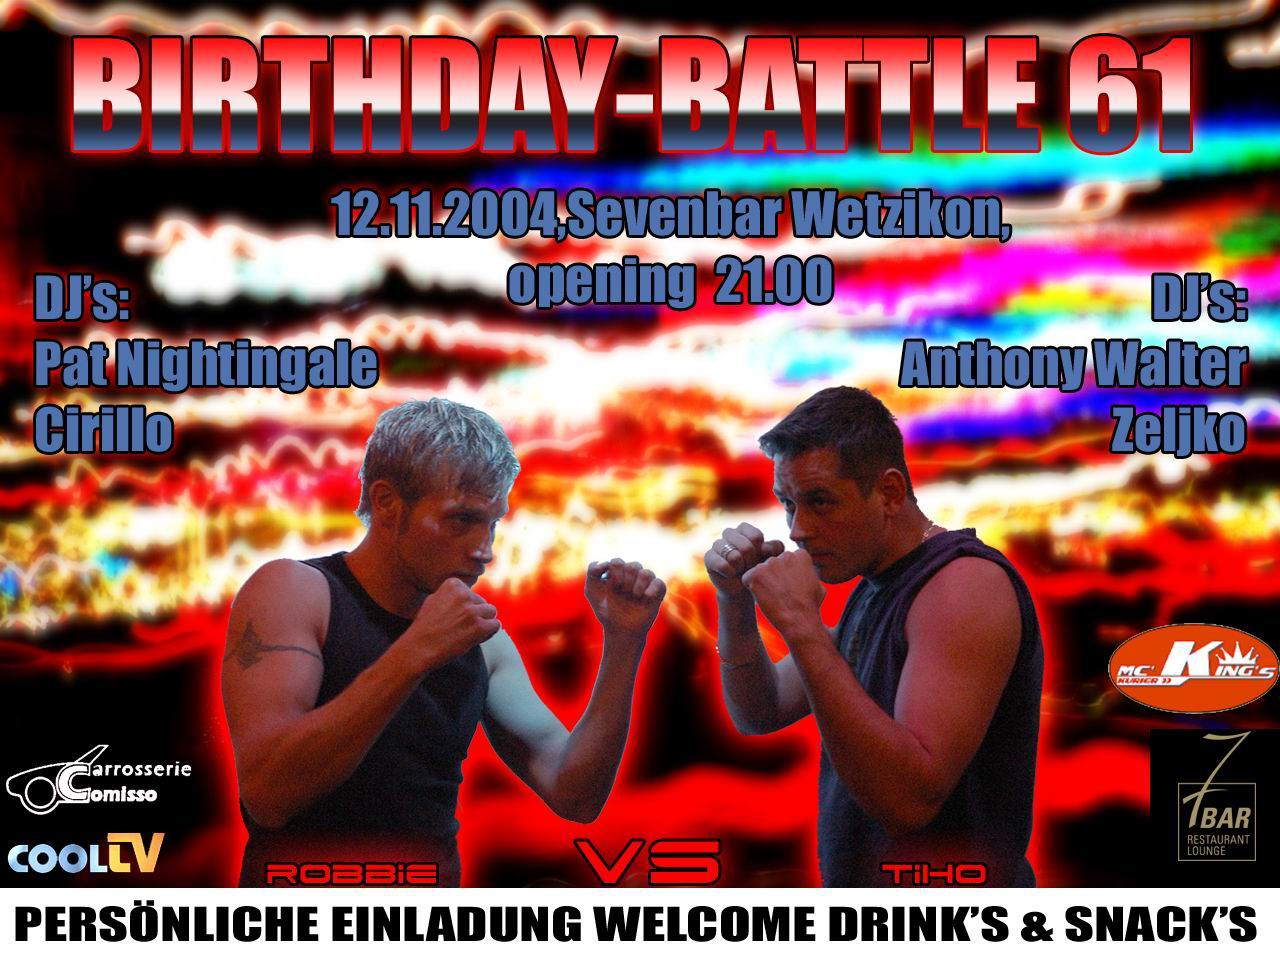 Birthday Battle | Sevenbar Wetzikon (ZH)